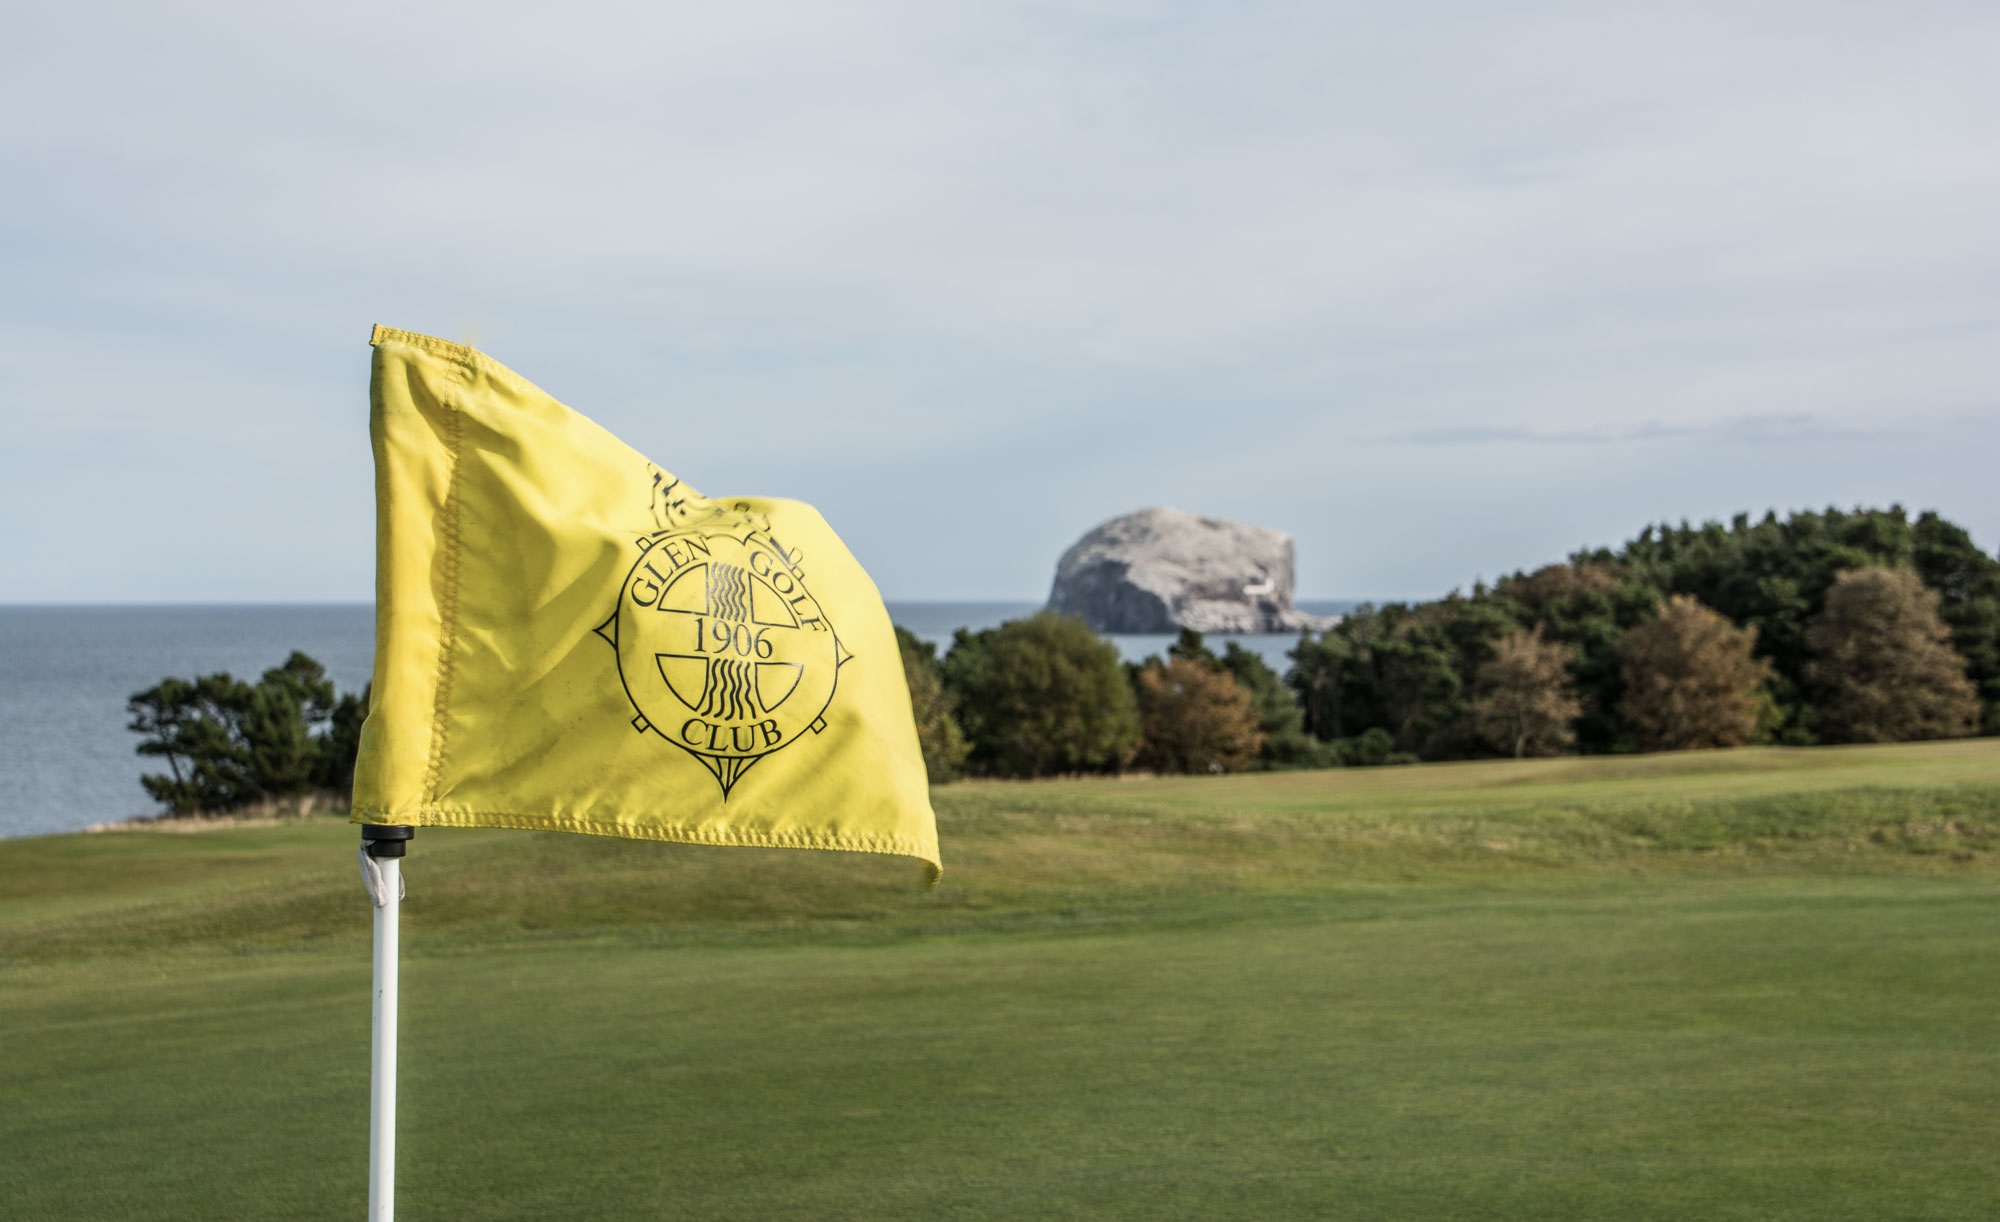 A flag blowing in the wind at Glen Golf Club East Links.